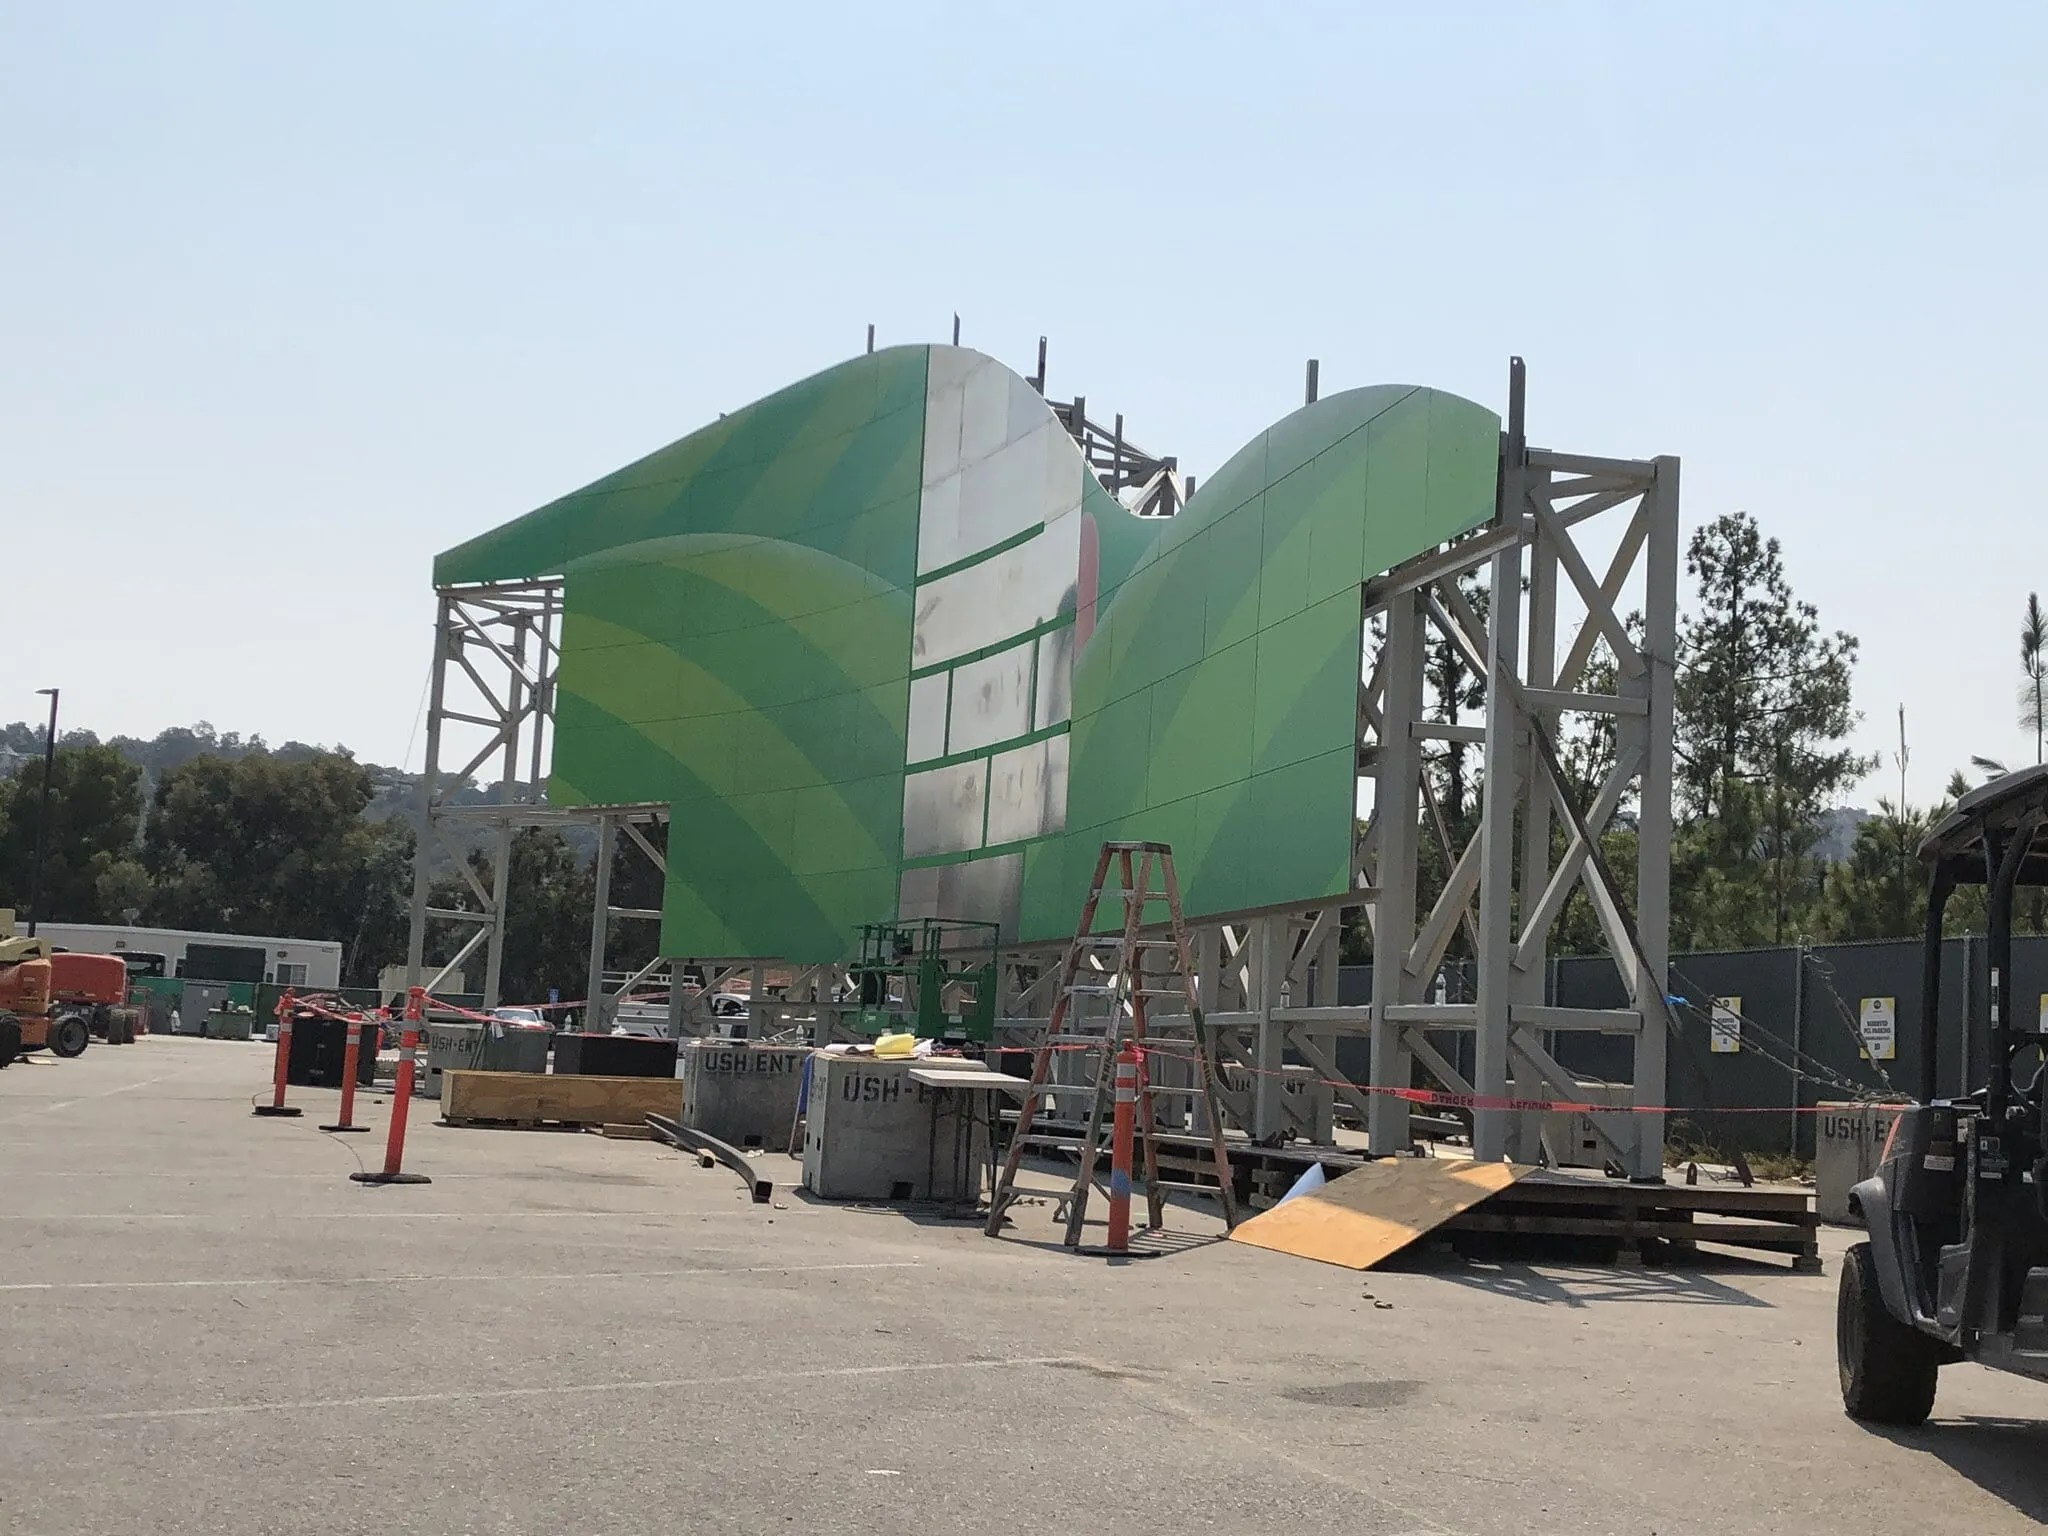 PHOTOS: First Look at Construction on Super Nintendo World in Universal Studios Hollywood